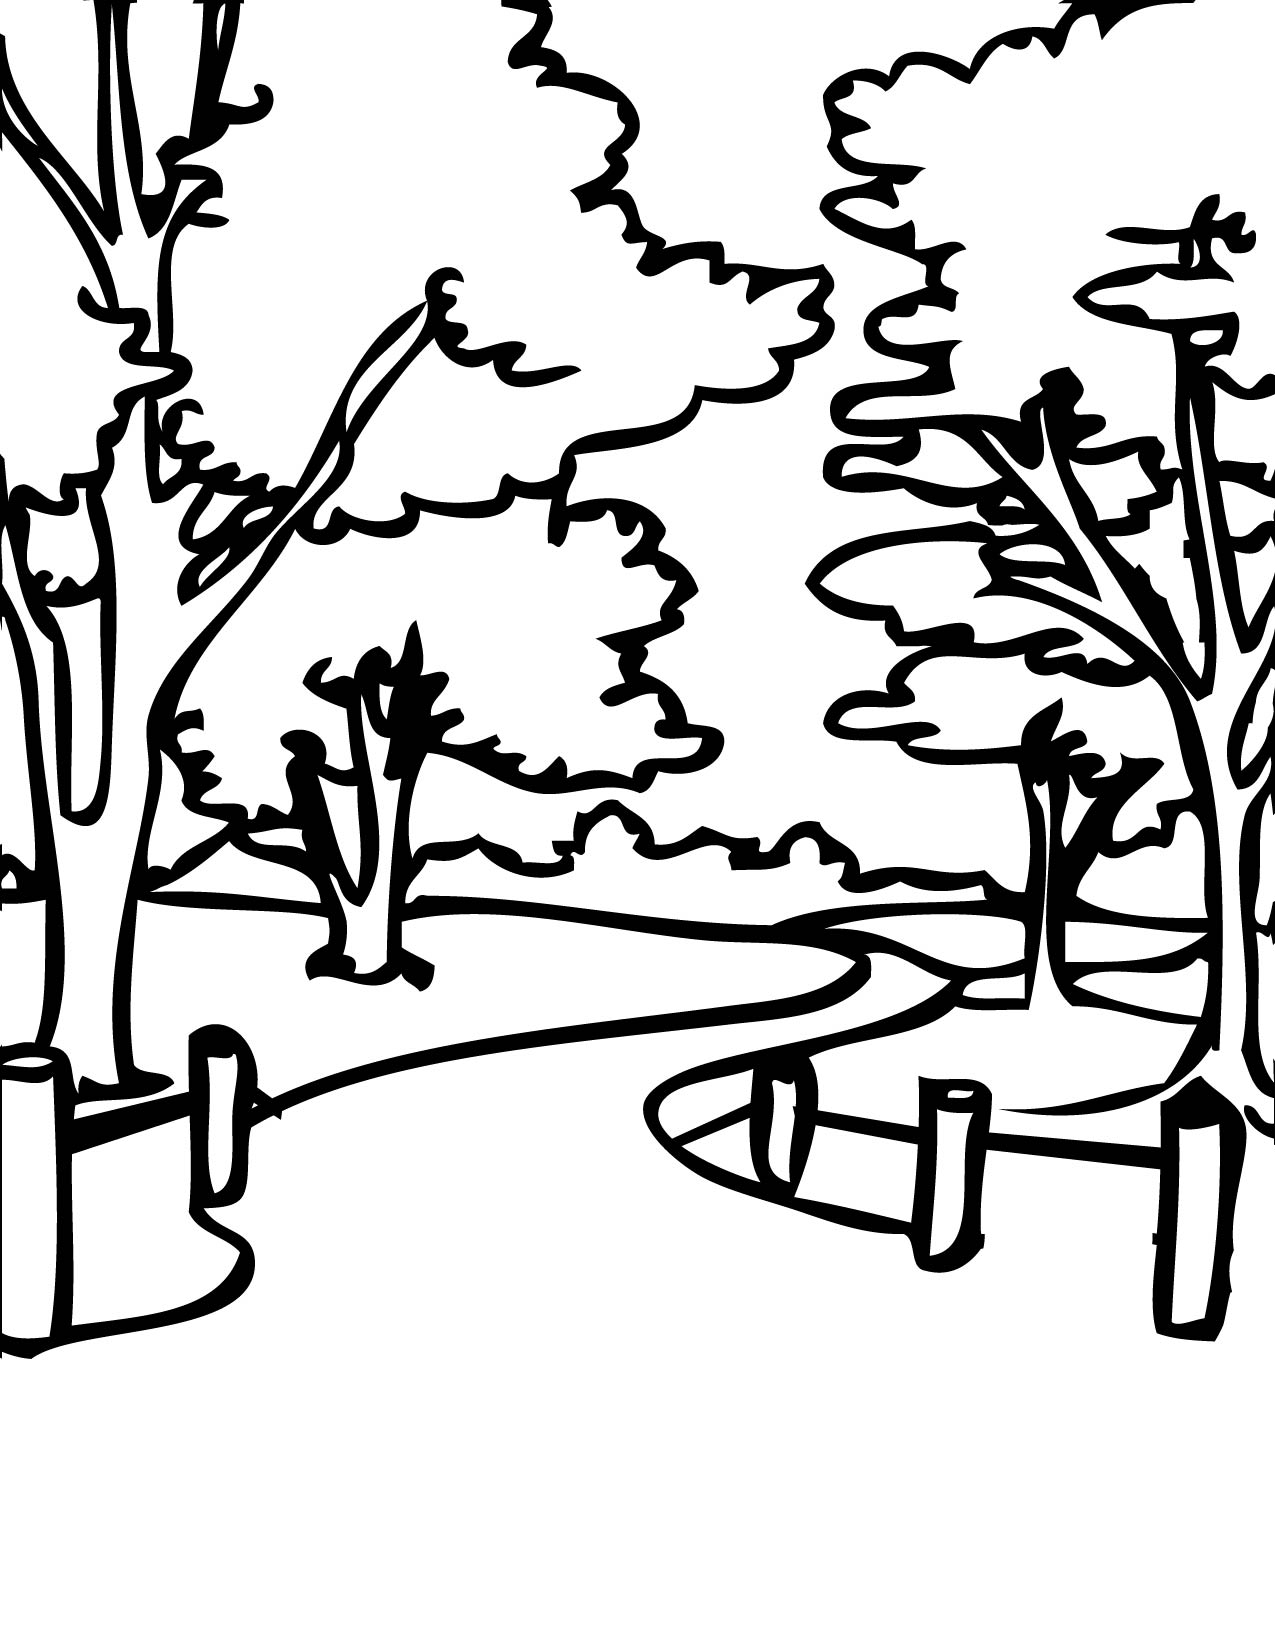 Free coloring pages of places in the community